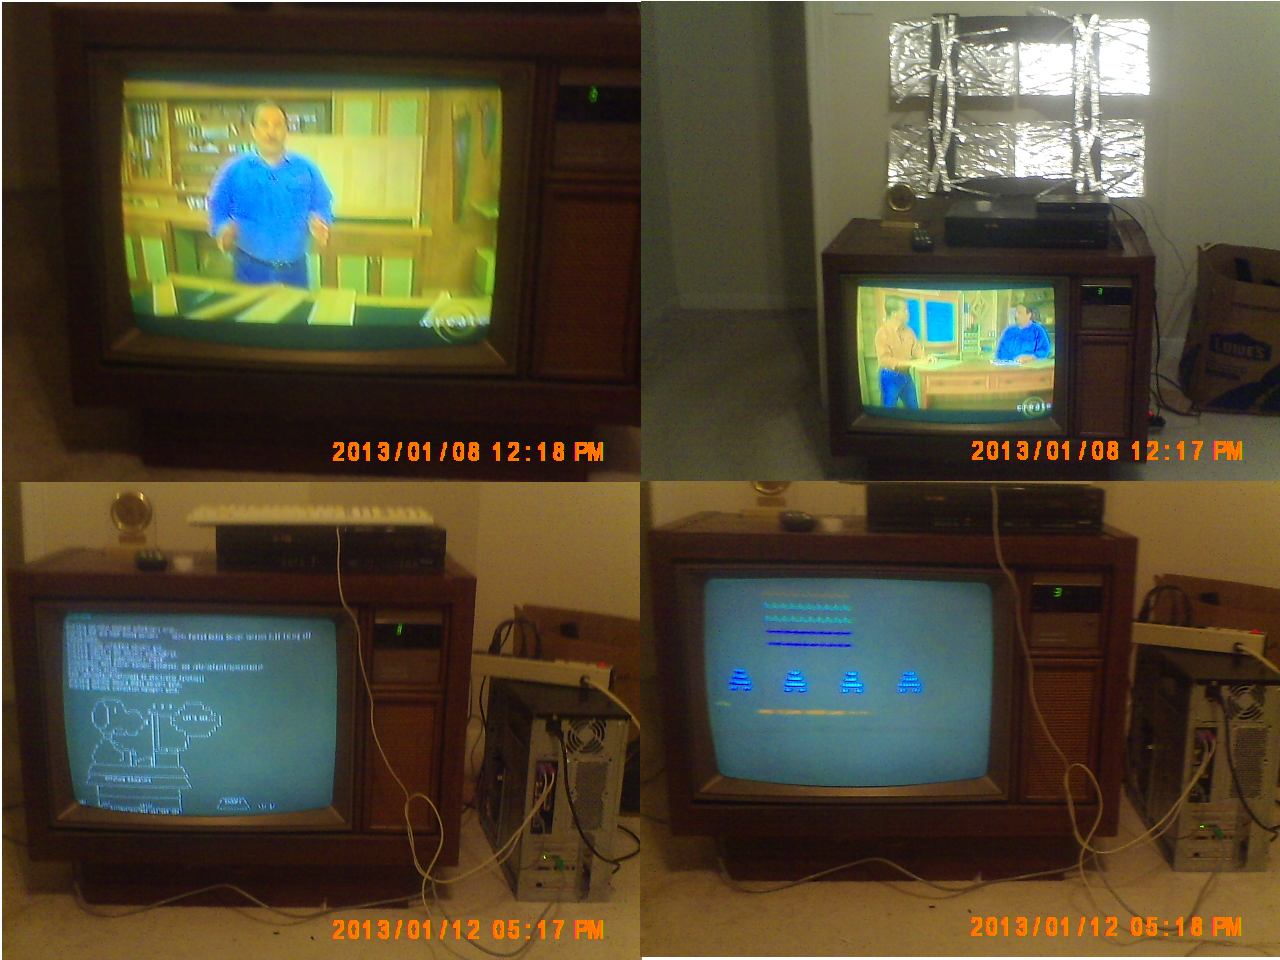 January 2013 Computothought Computer Programcontrolled Circuit Board Recycling Equipment Tv4pic